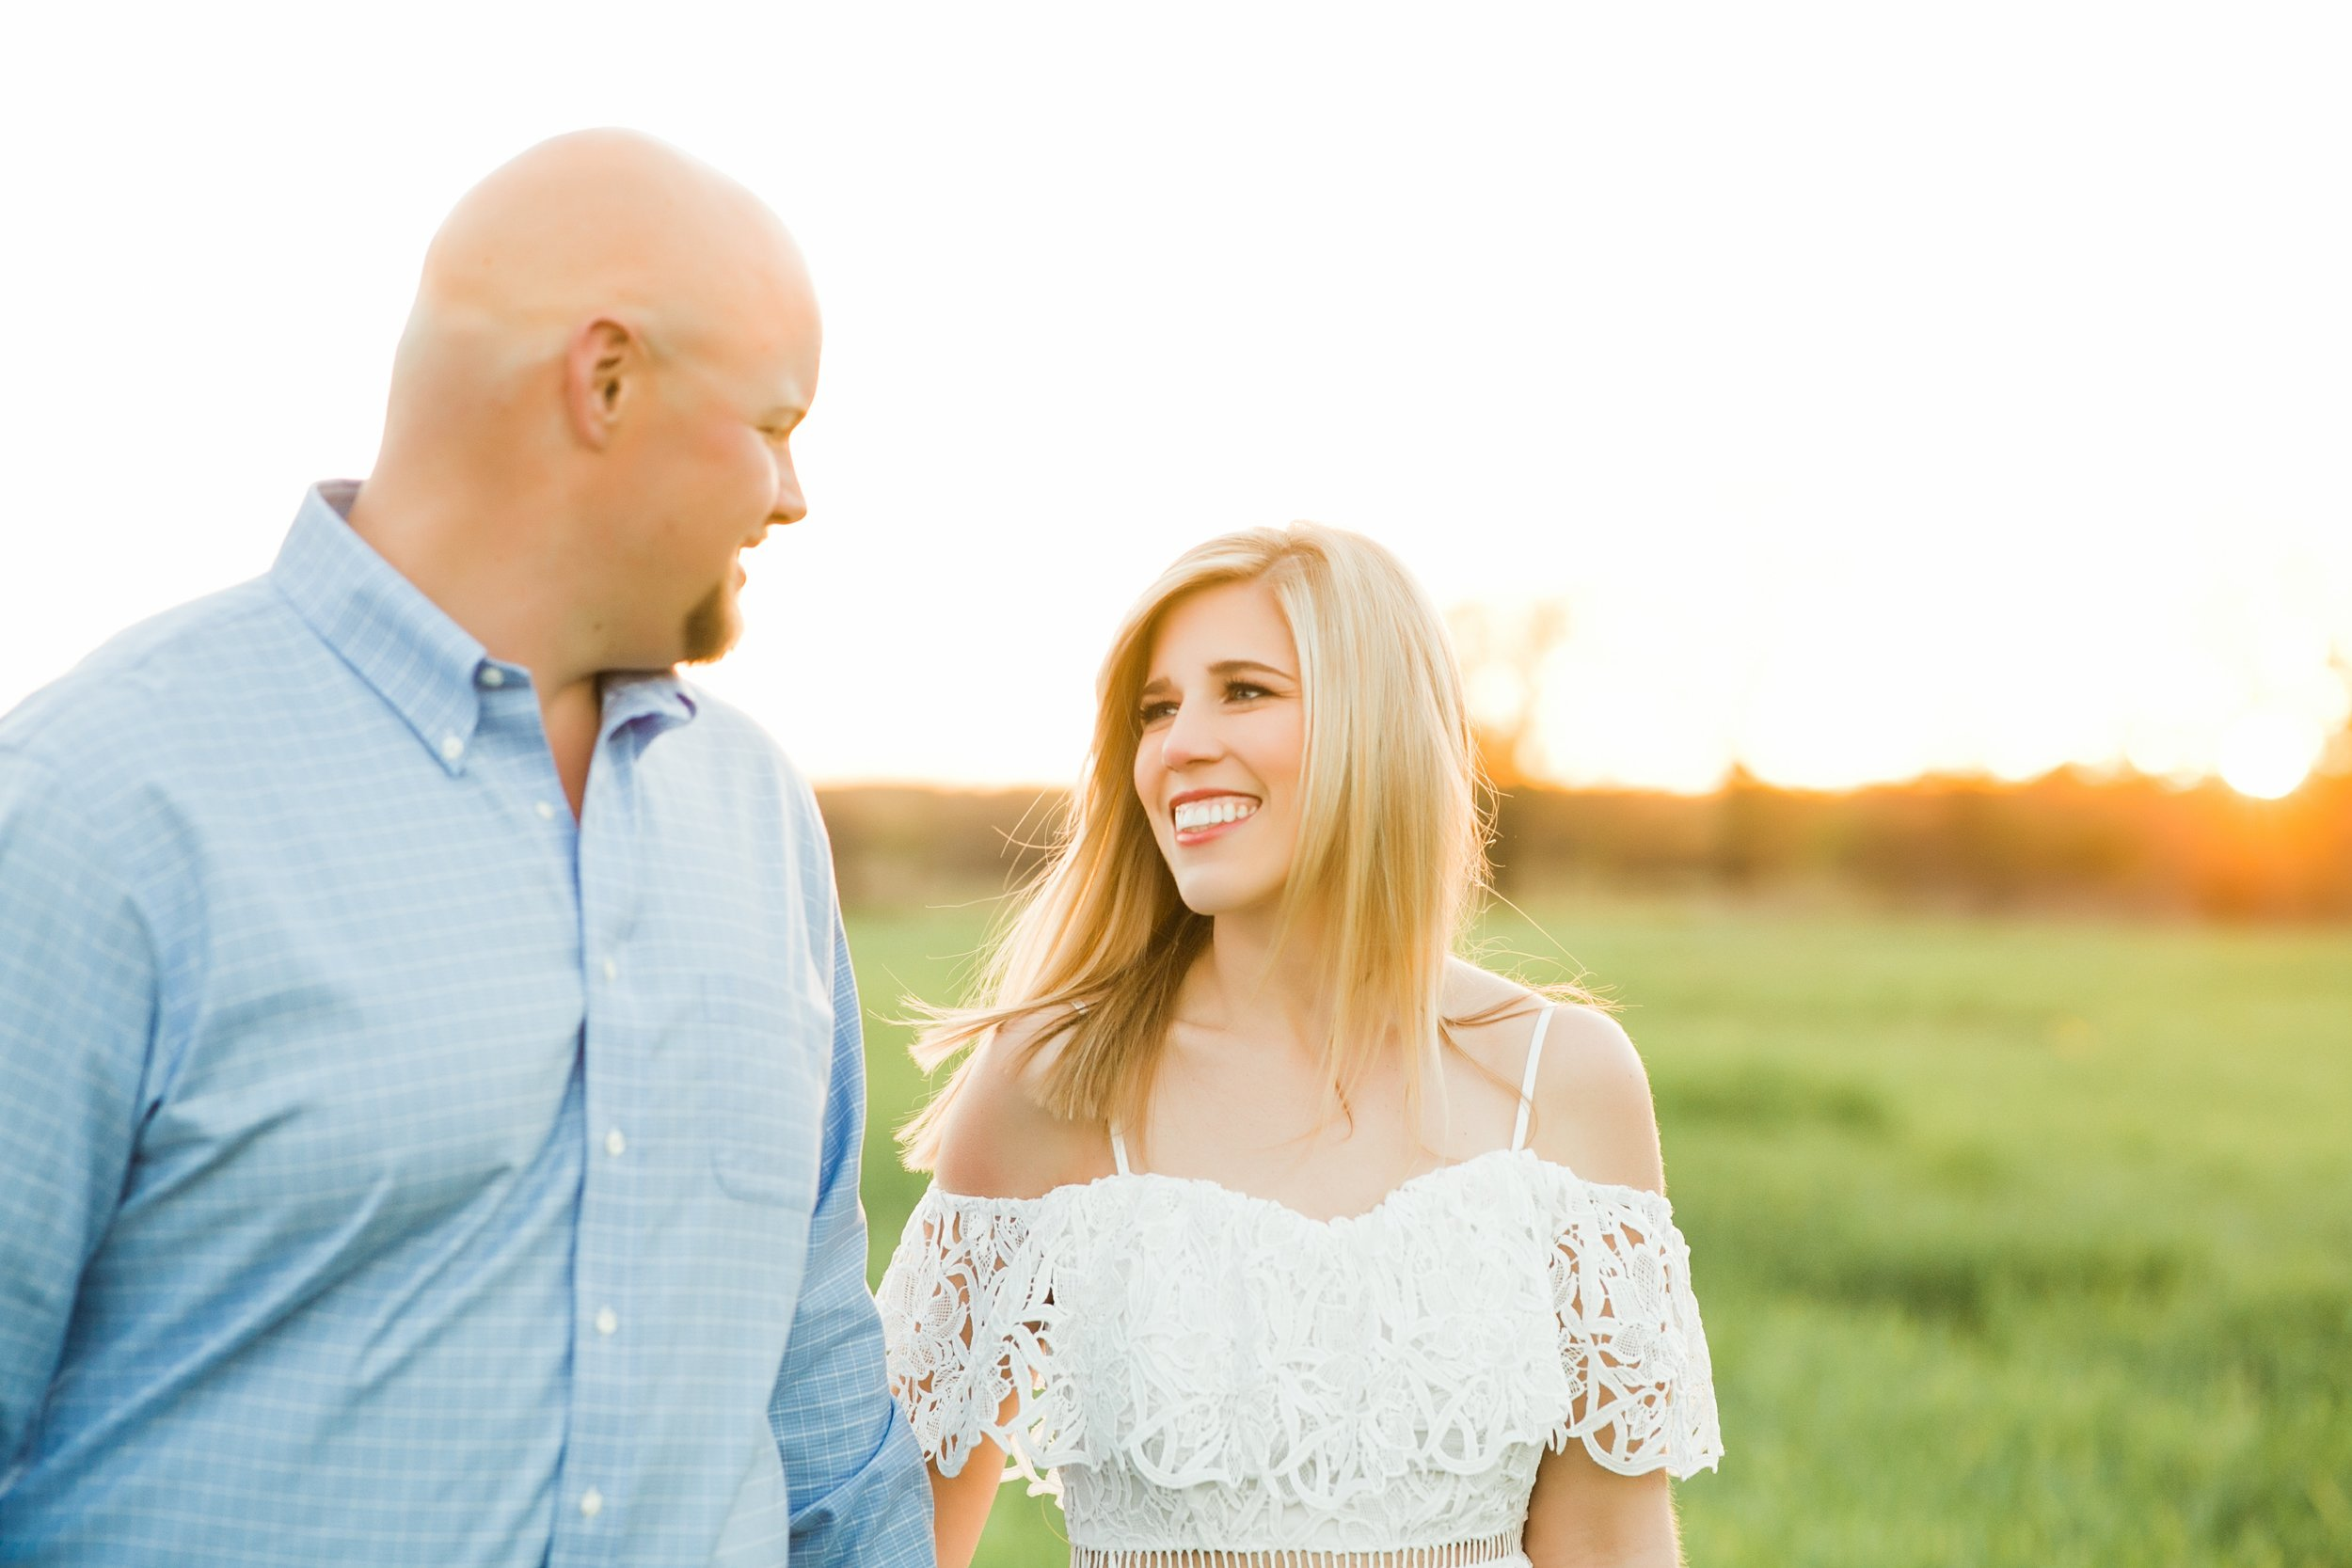 kayla-trent-country-engagement-session-texas-windthorst-graham-wichita-falls-jeep-engaged-00016.jpg